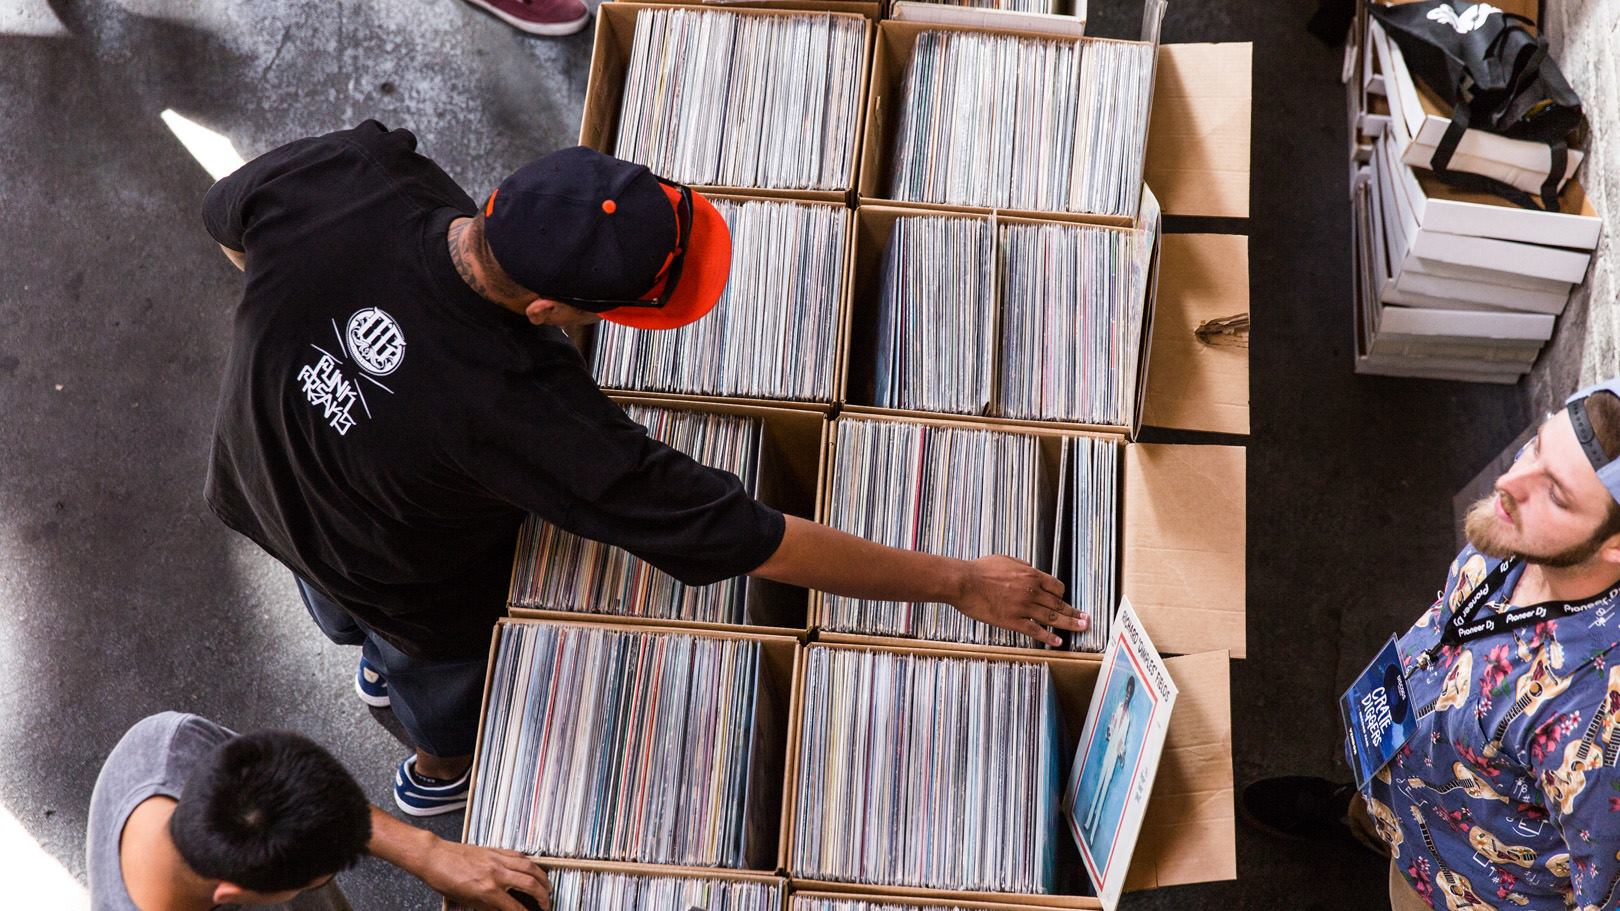 Crate Diggers Los Angeles Record Fair 3